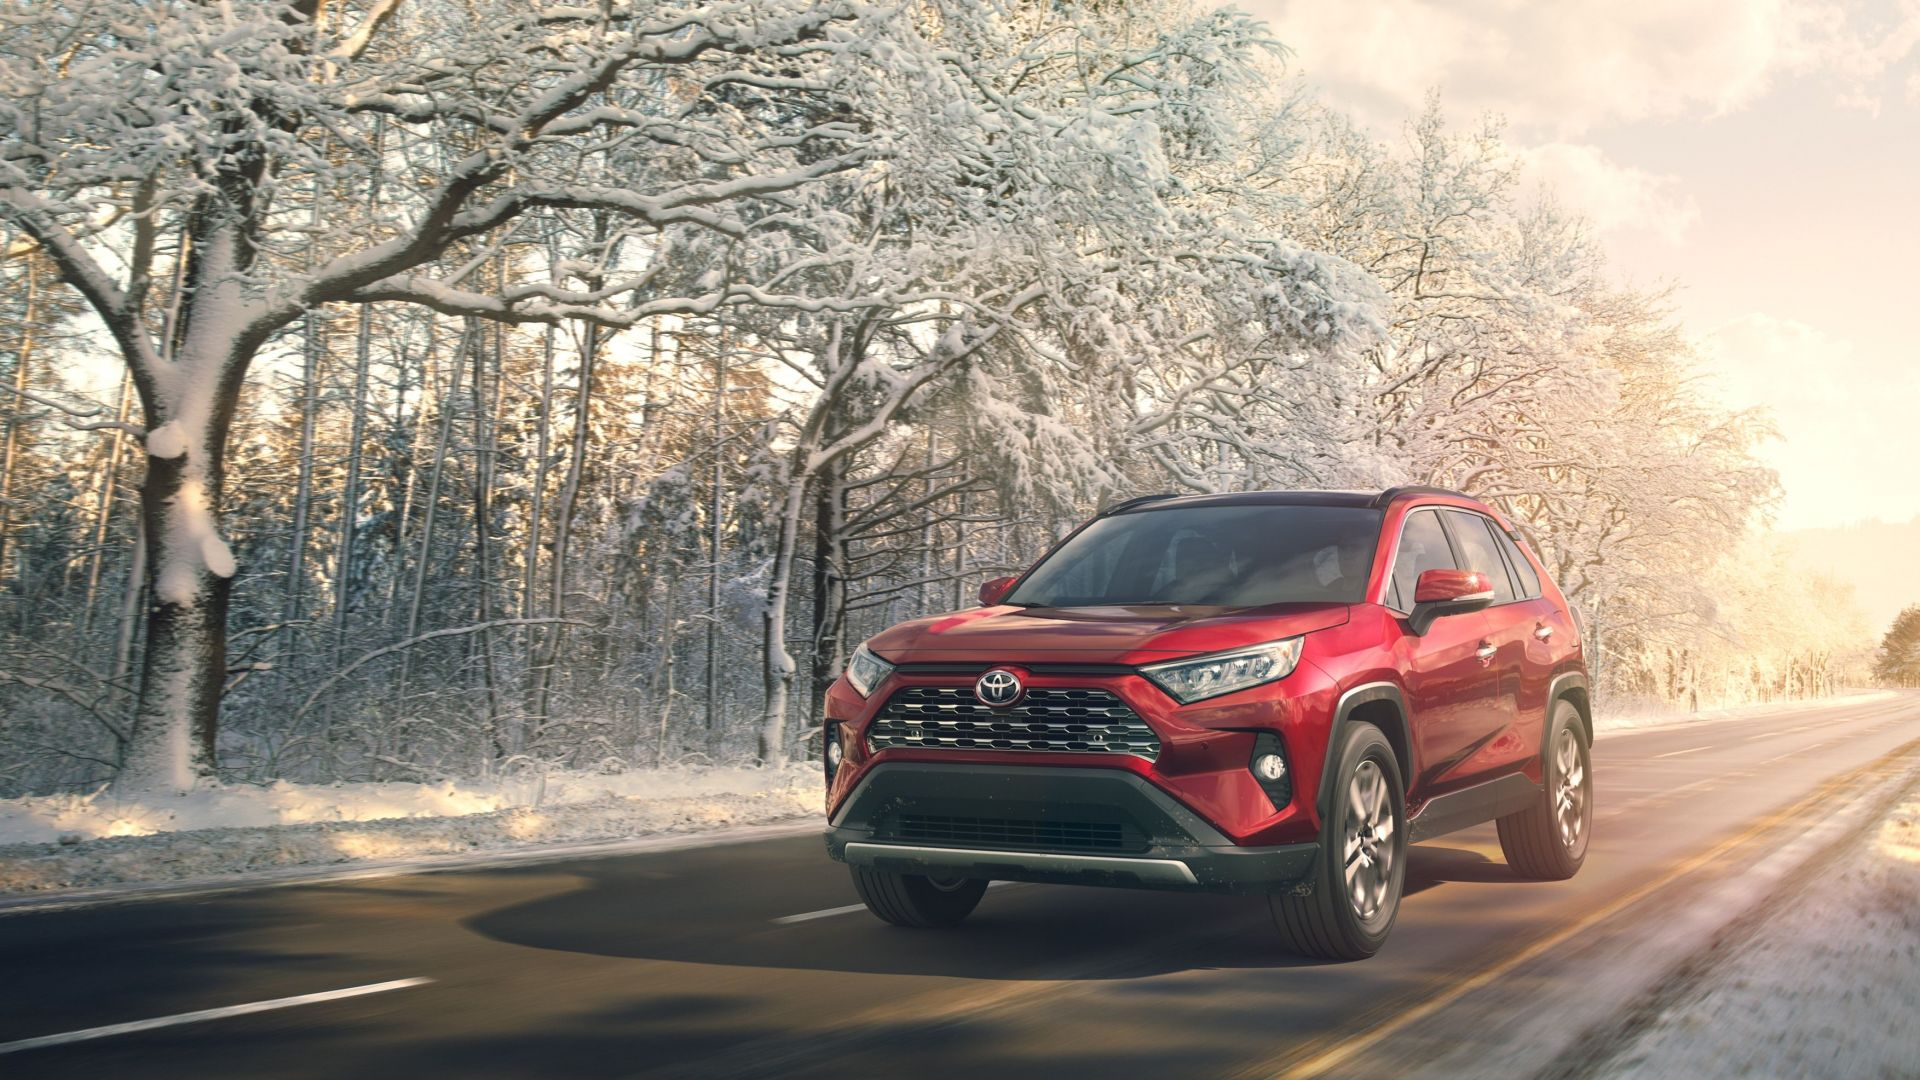 Rav 4, SUV, Cars 2019 (horizontal)